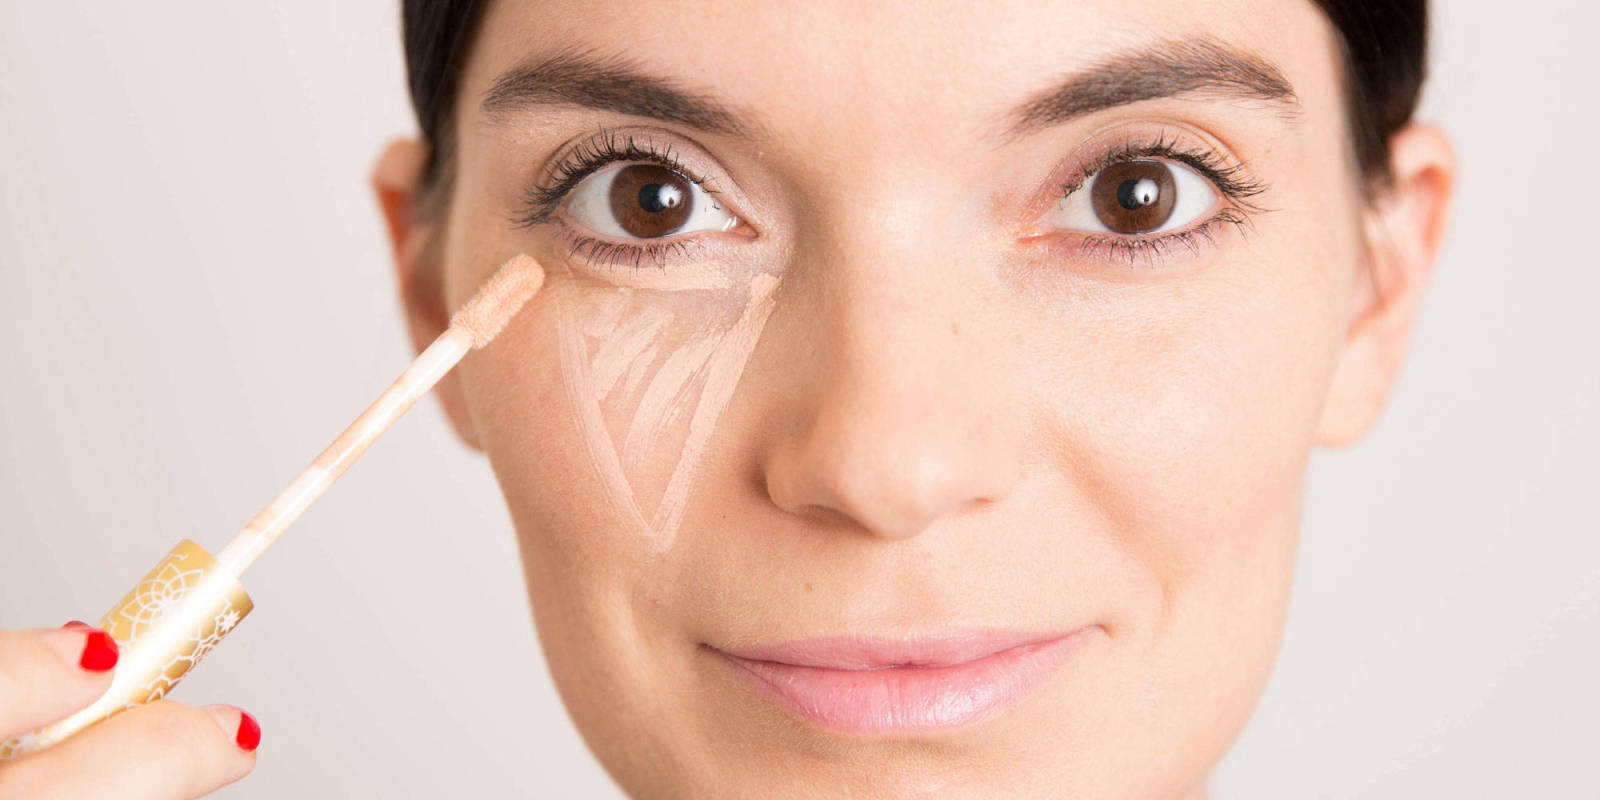 Using a top-notch concealer is key to achieving a flawless appearing makeup application. The best concealers cover discolorations, lighten dark areas, disguise blemishes, and work in tandem with your foundation to achieve the appearance of an even skin tone. On the other hand, a poorly formulated or.